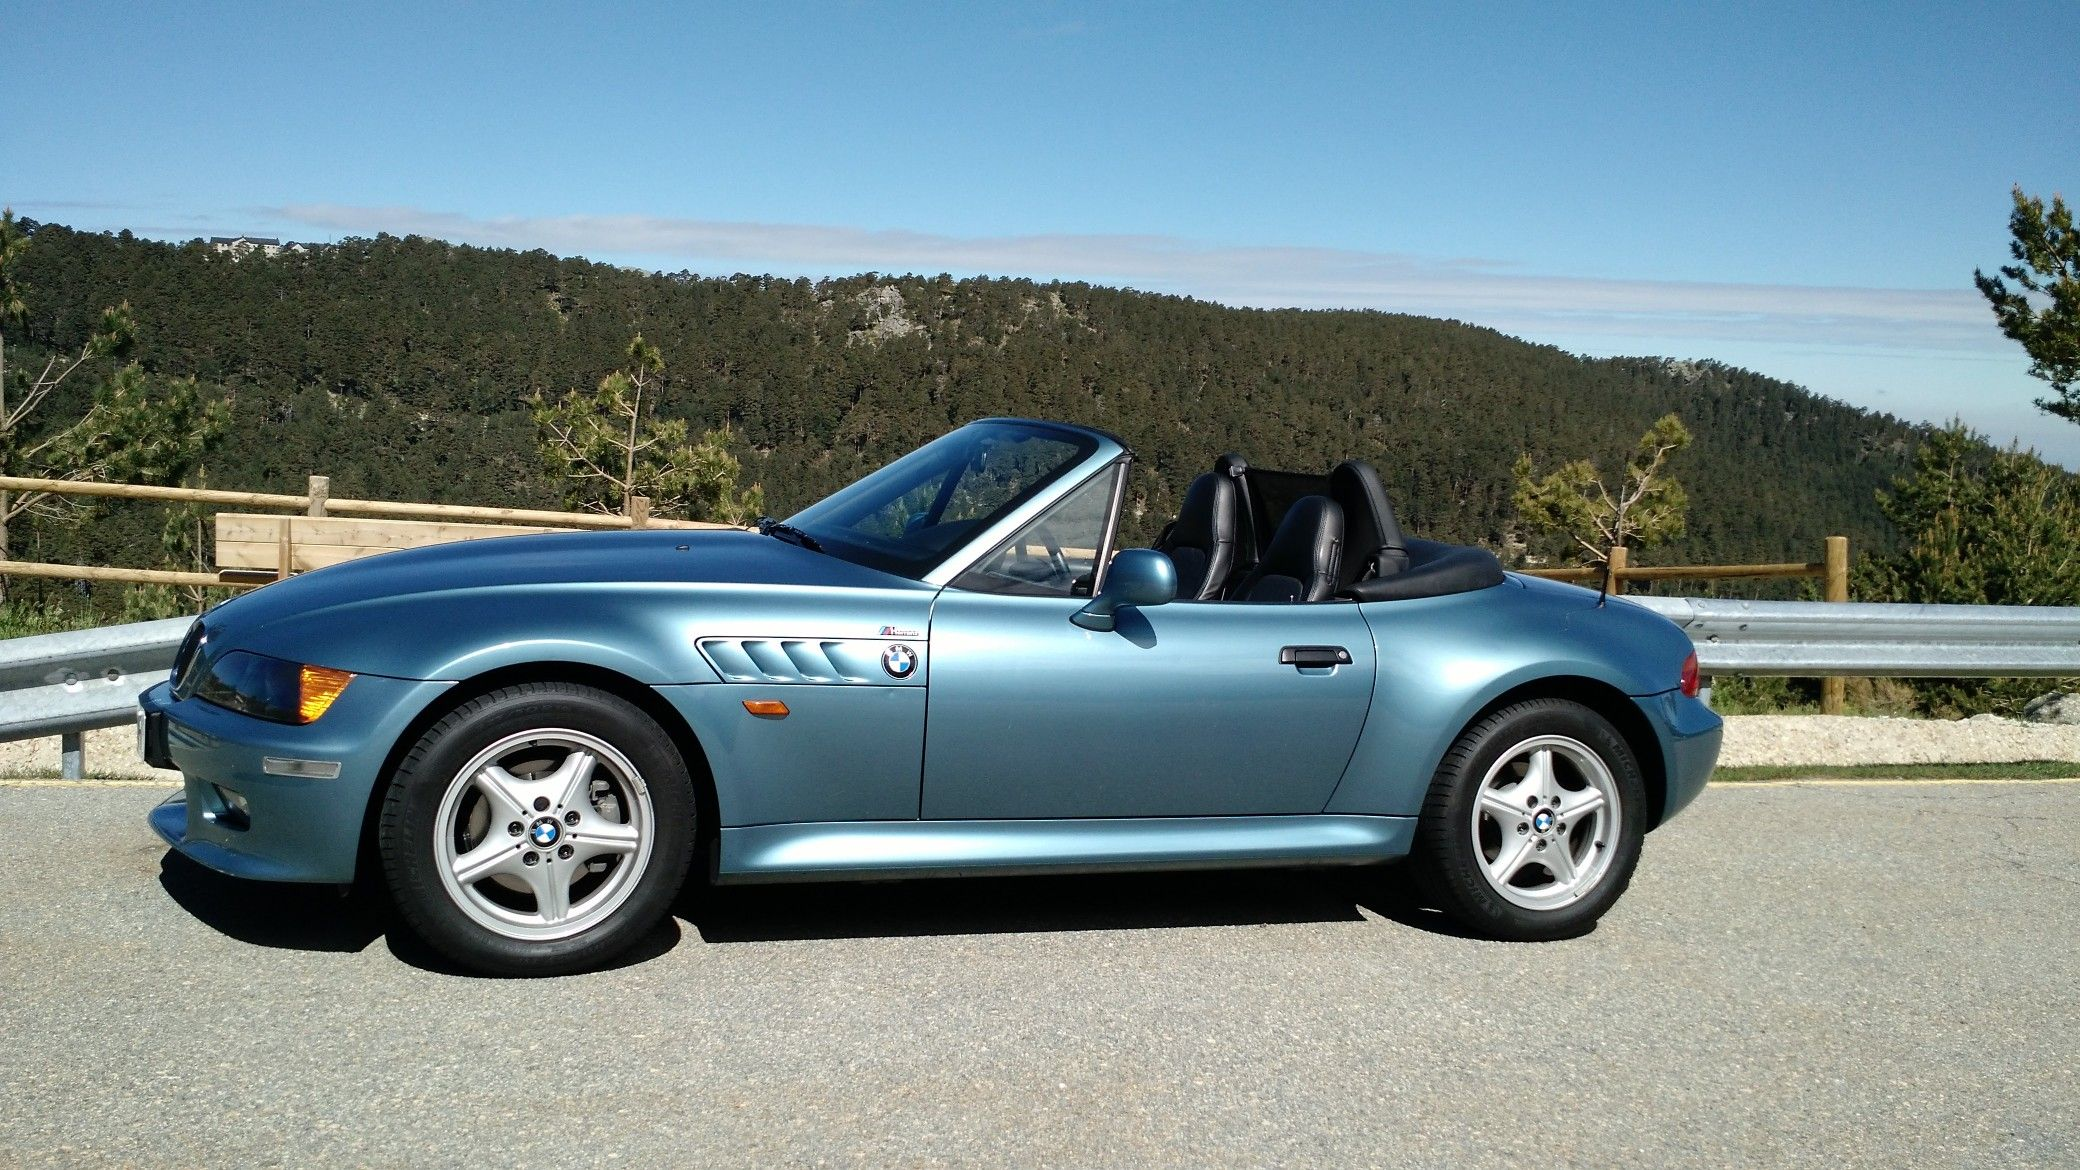 acac48f4eb84d6dc9589f17a230398a7 Cool Bmw Z1 Joyas sobre Ruedas Cars Trend